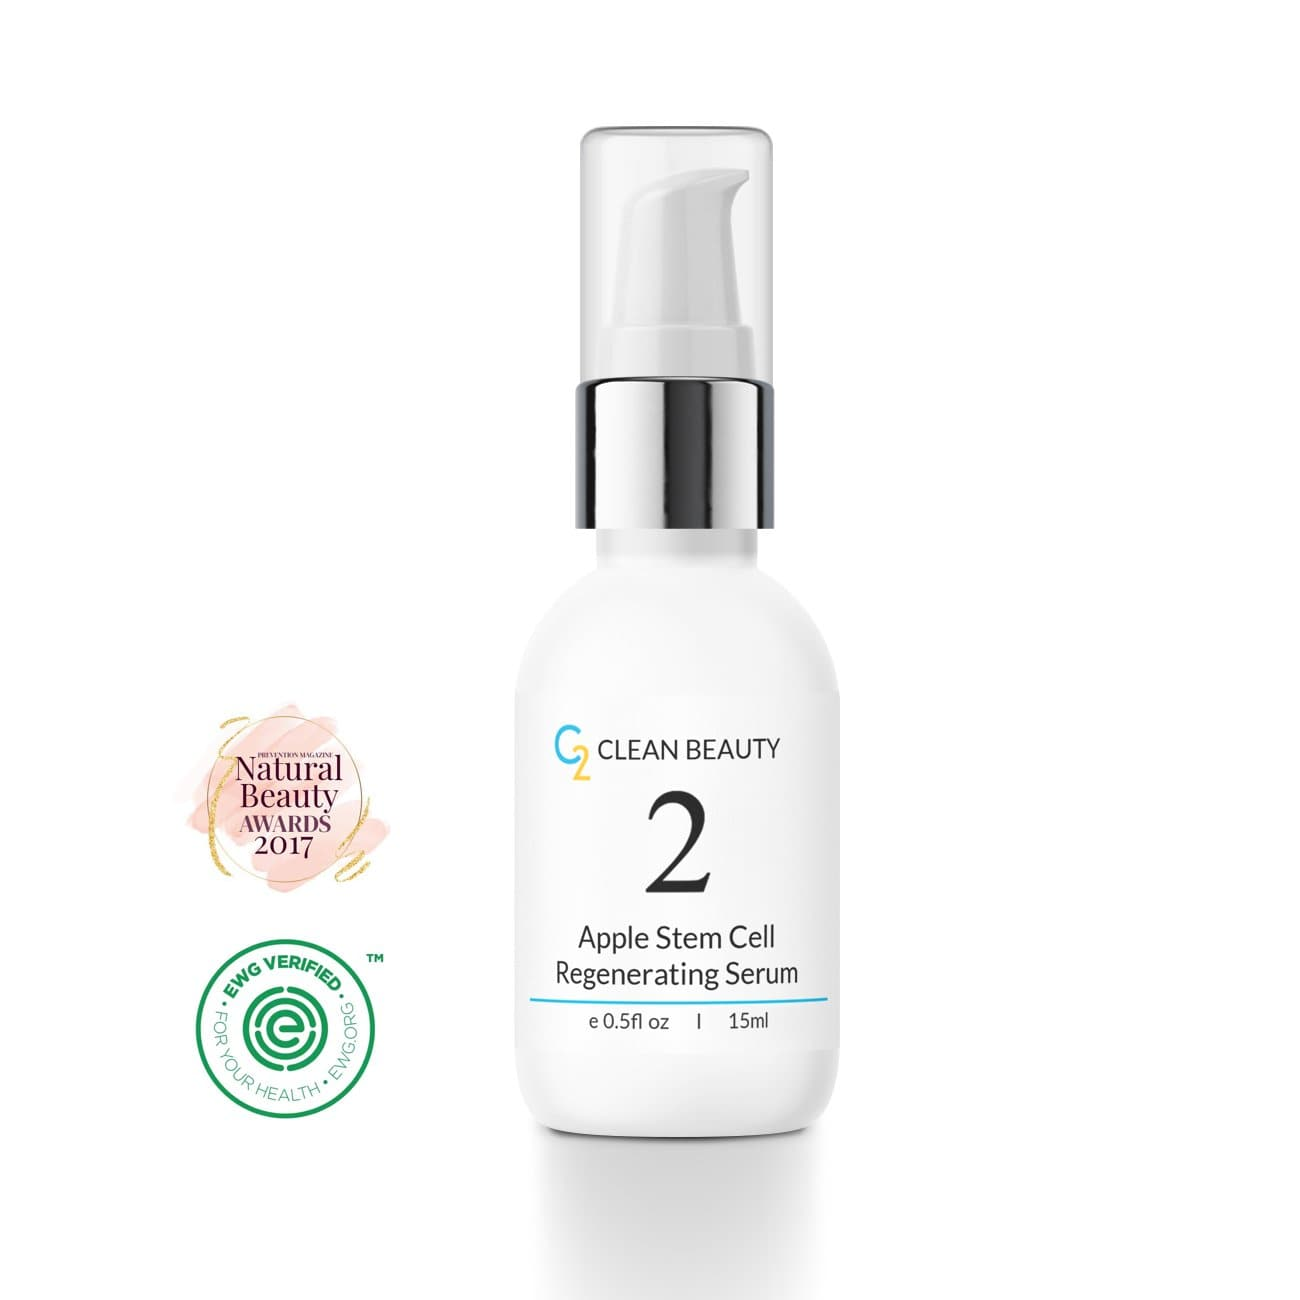 Award Winning Apple Stem Cell <br>Regenerating Serum